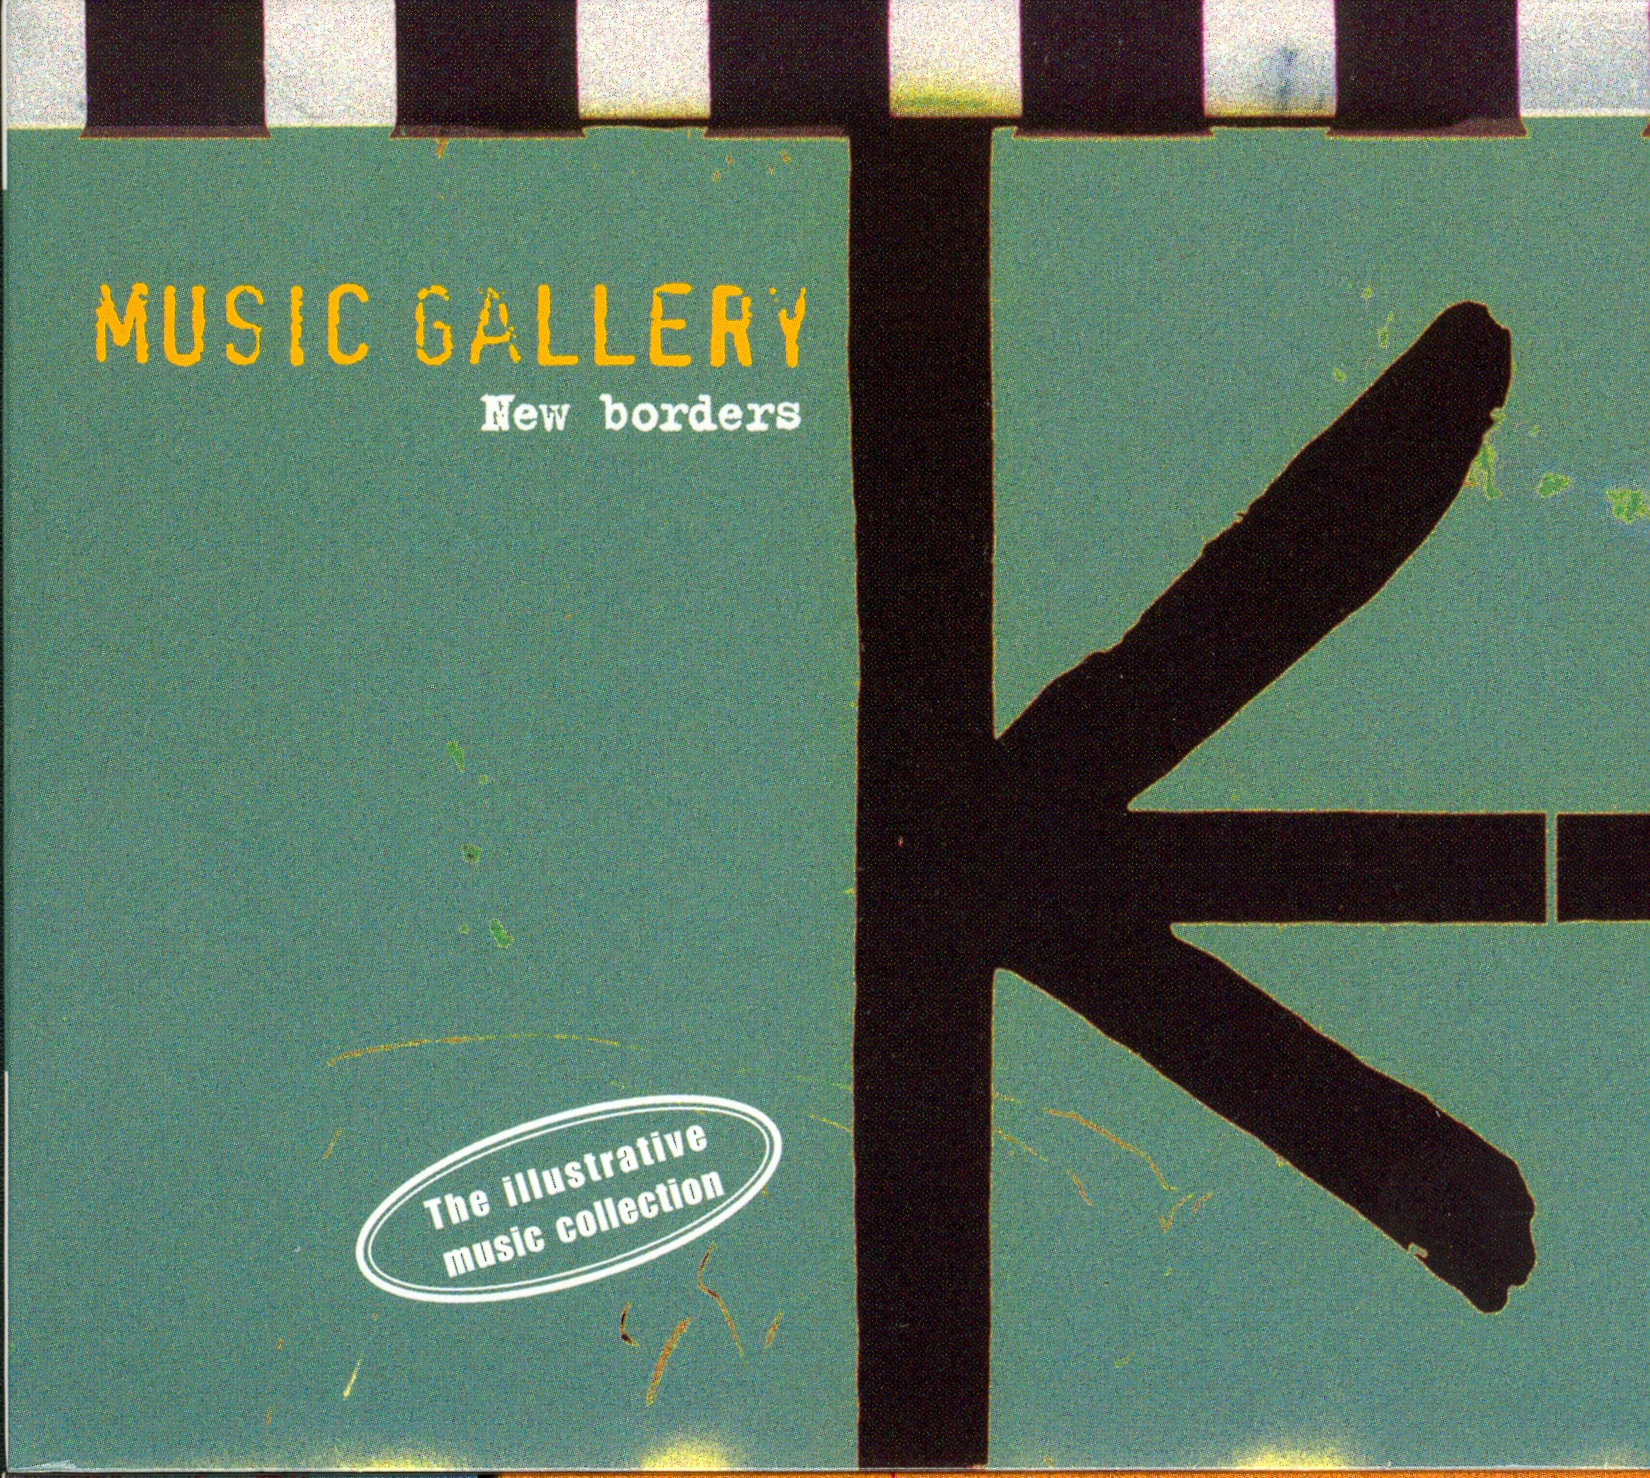 2000 Music Gallery - New borders - Composition, réalisation, claviers et bandonéon